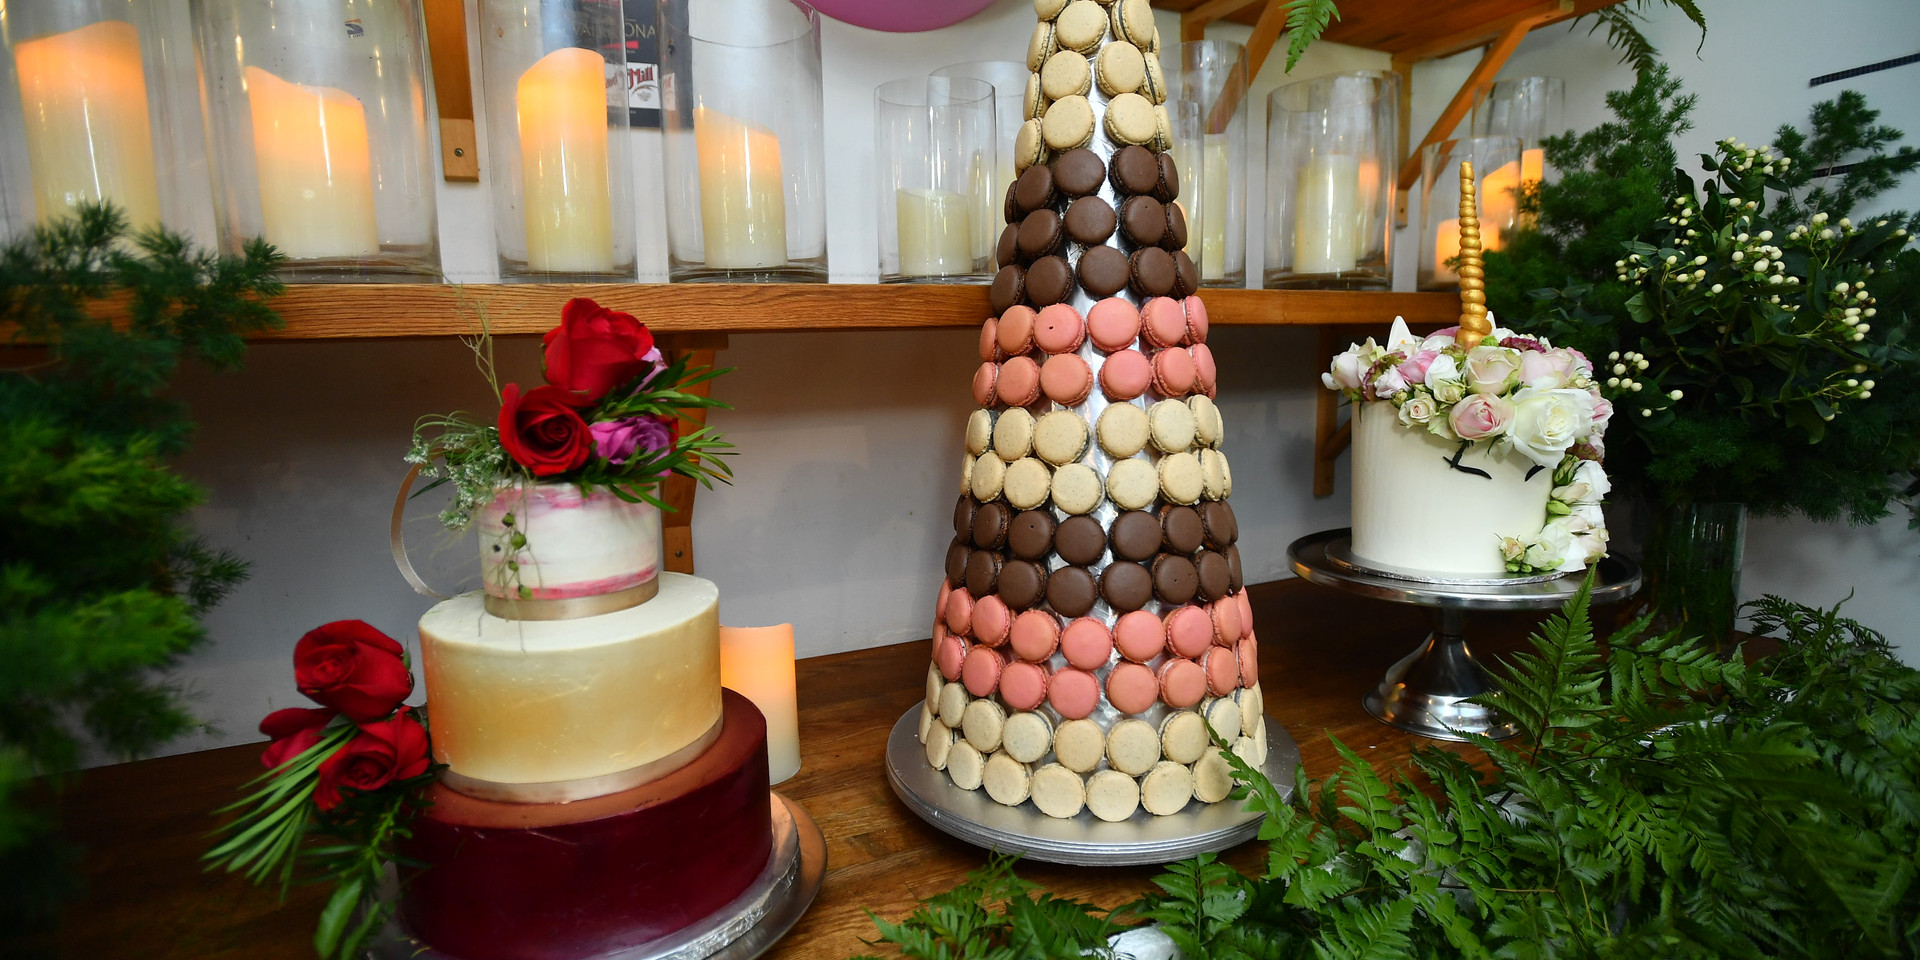 Cakes and Macarons